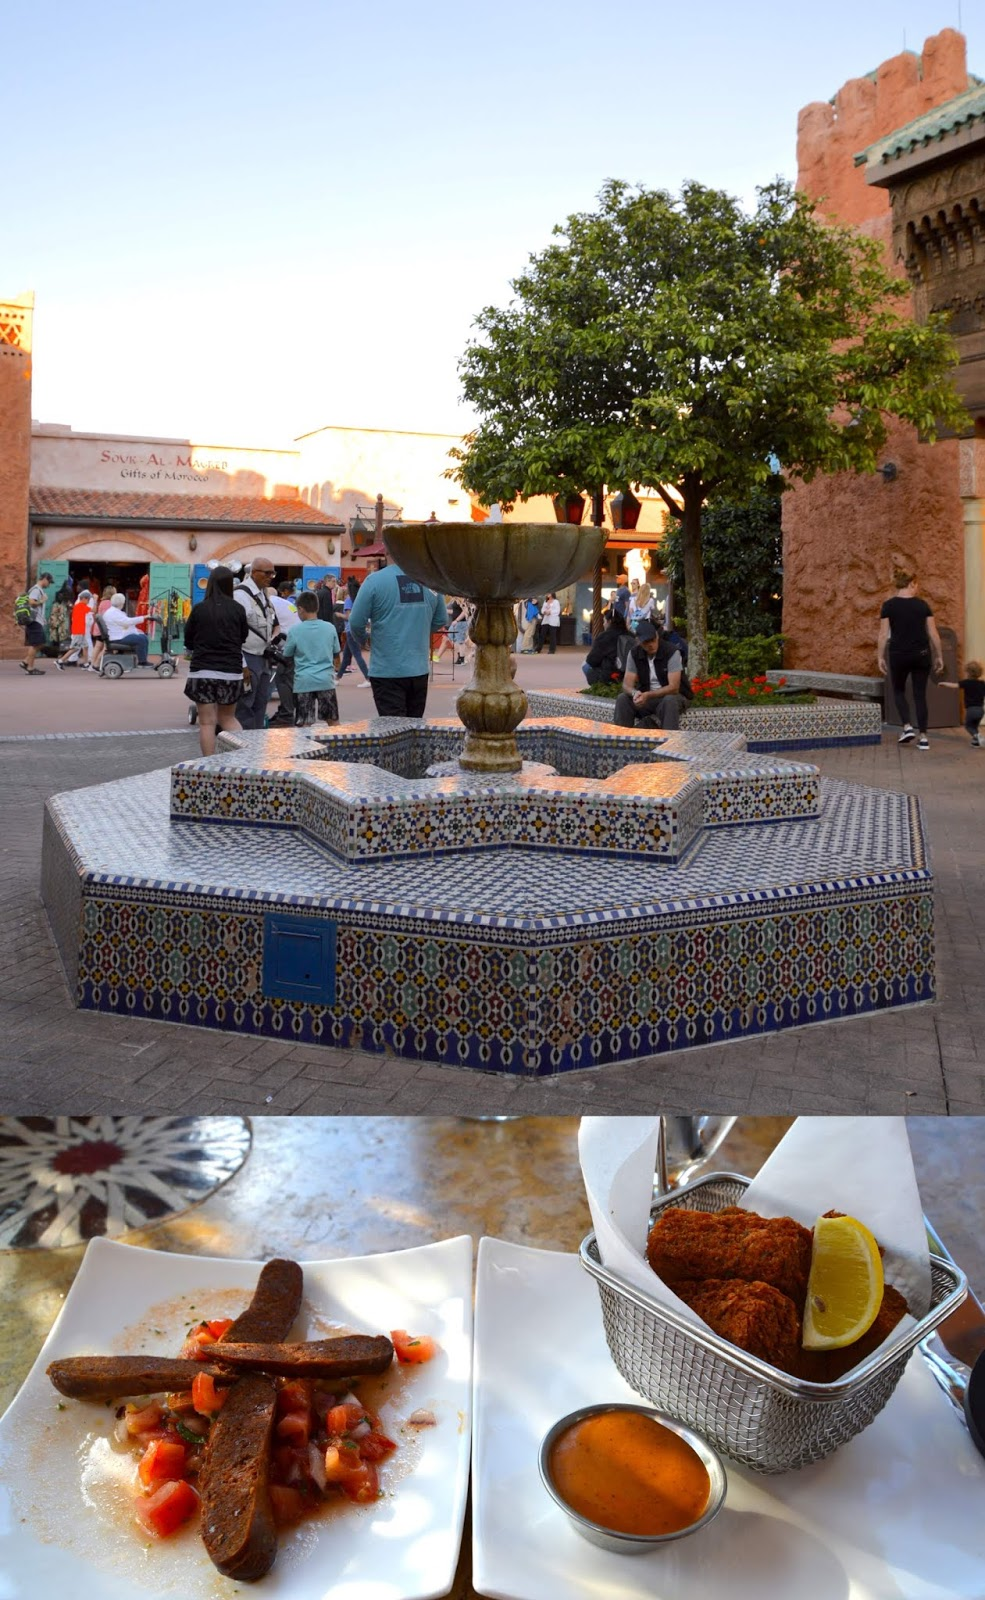 Best Food in Epcot - Morocco